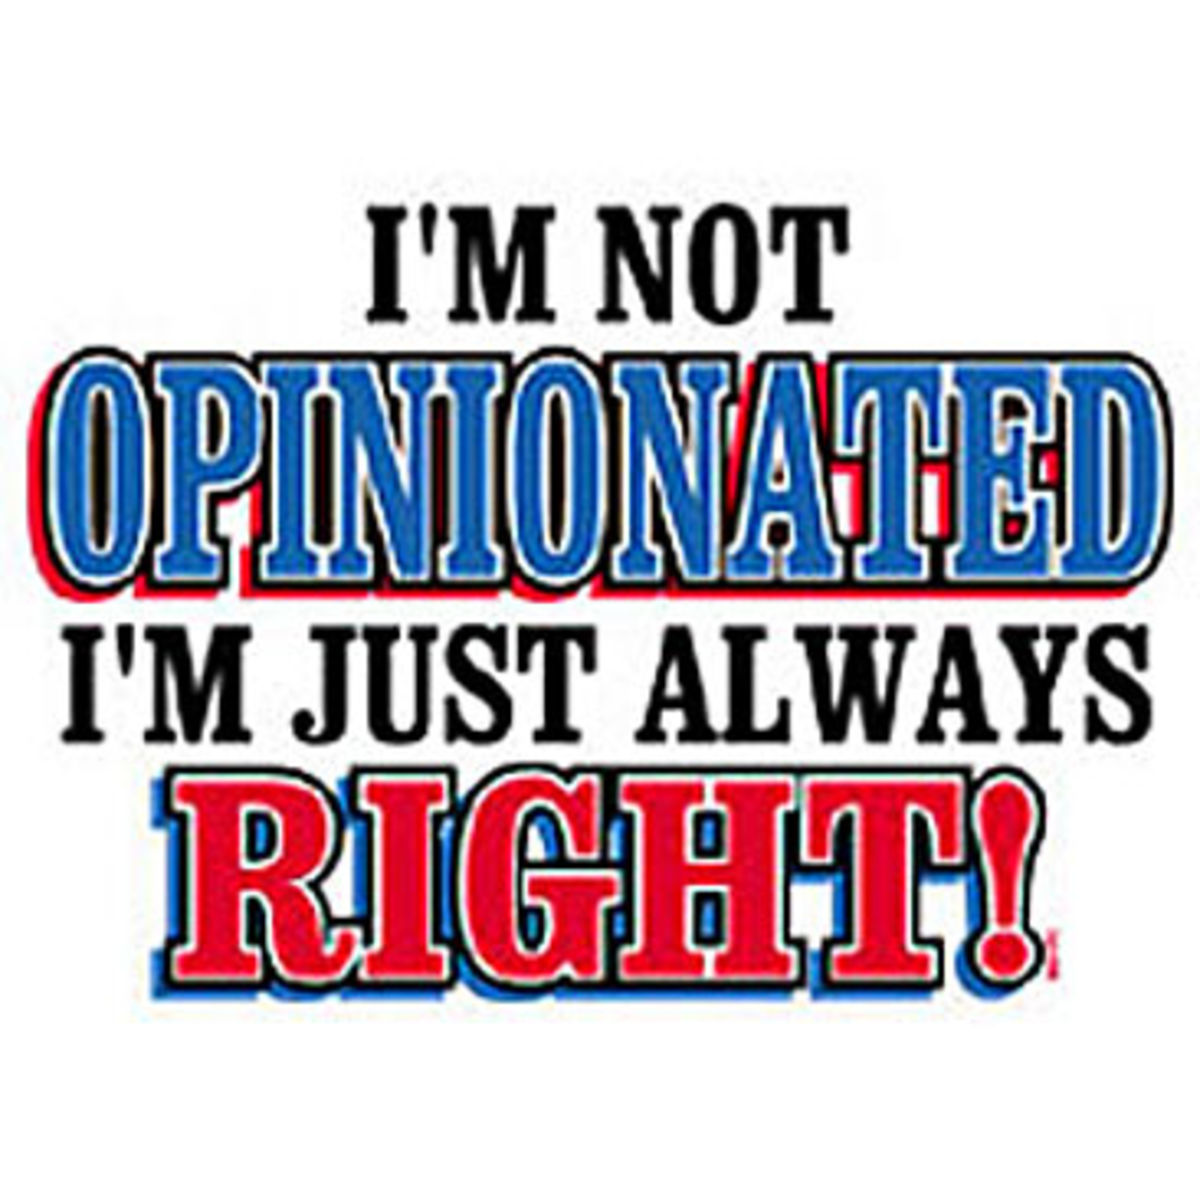 Passionate vs. Opinionated - The 7 Distinctions   Psychology Today